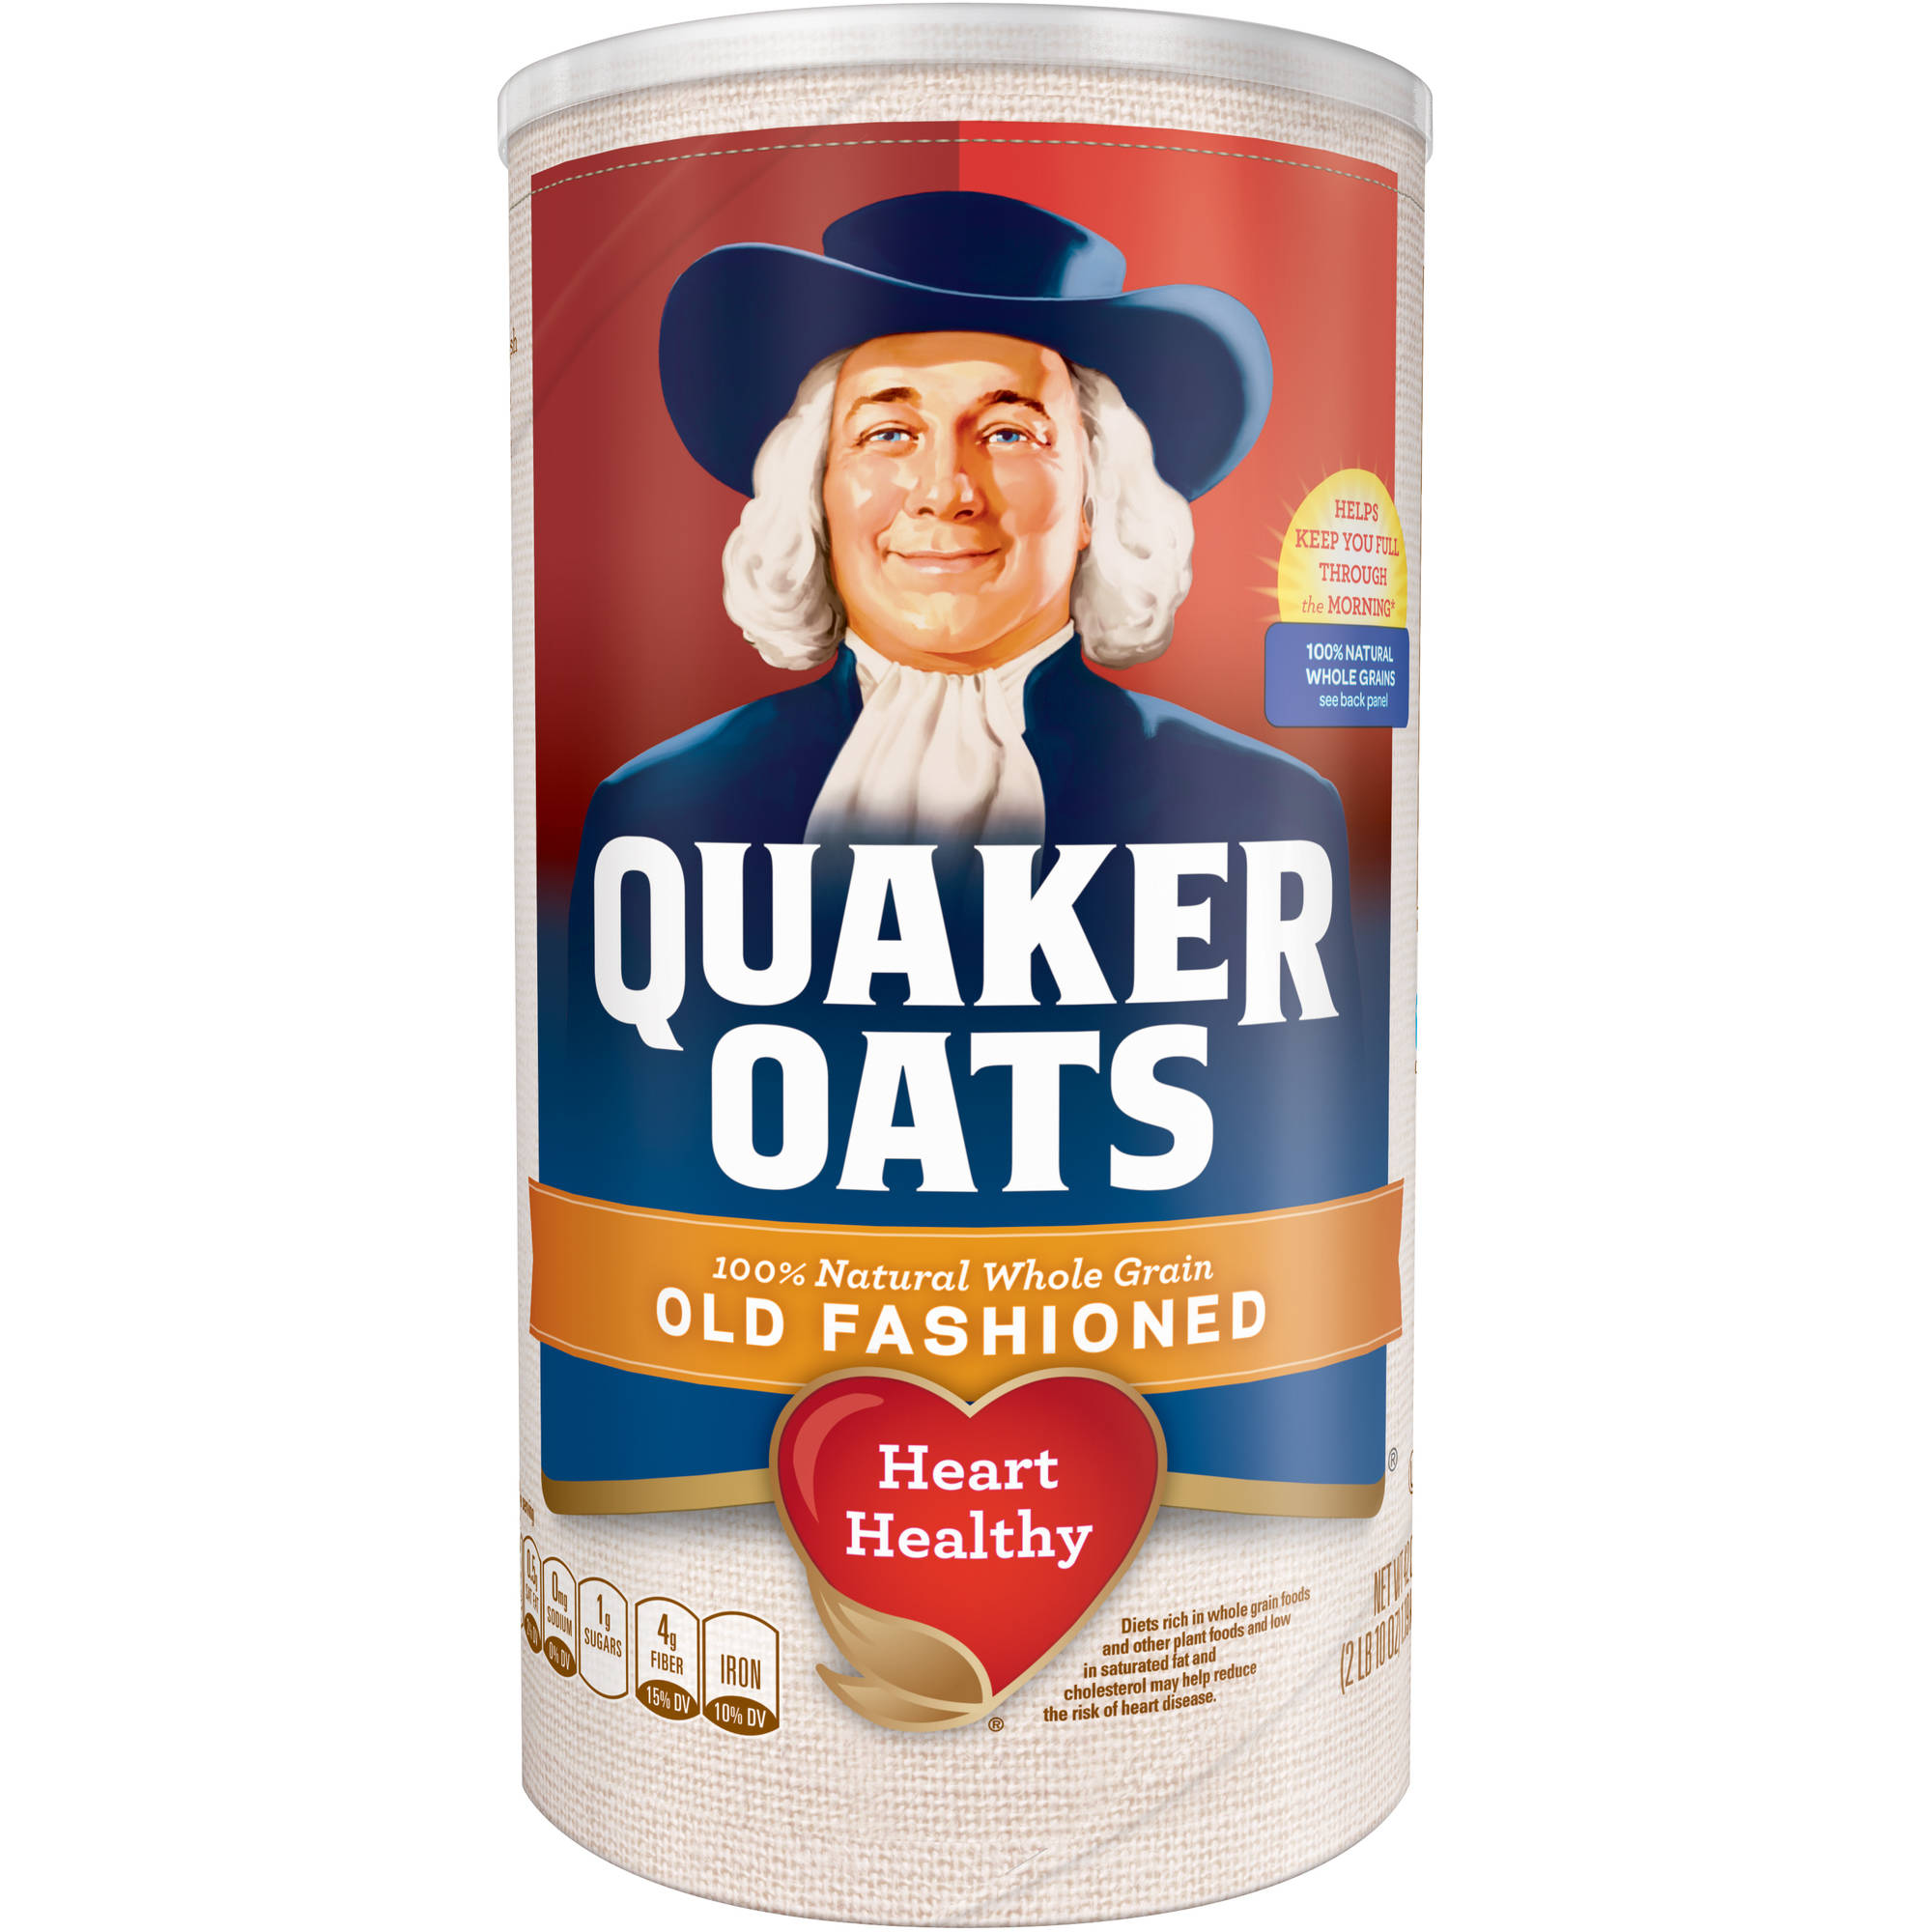 Quaker Oats Old Fashioned Oats, 42 oz